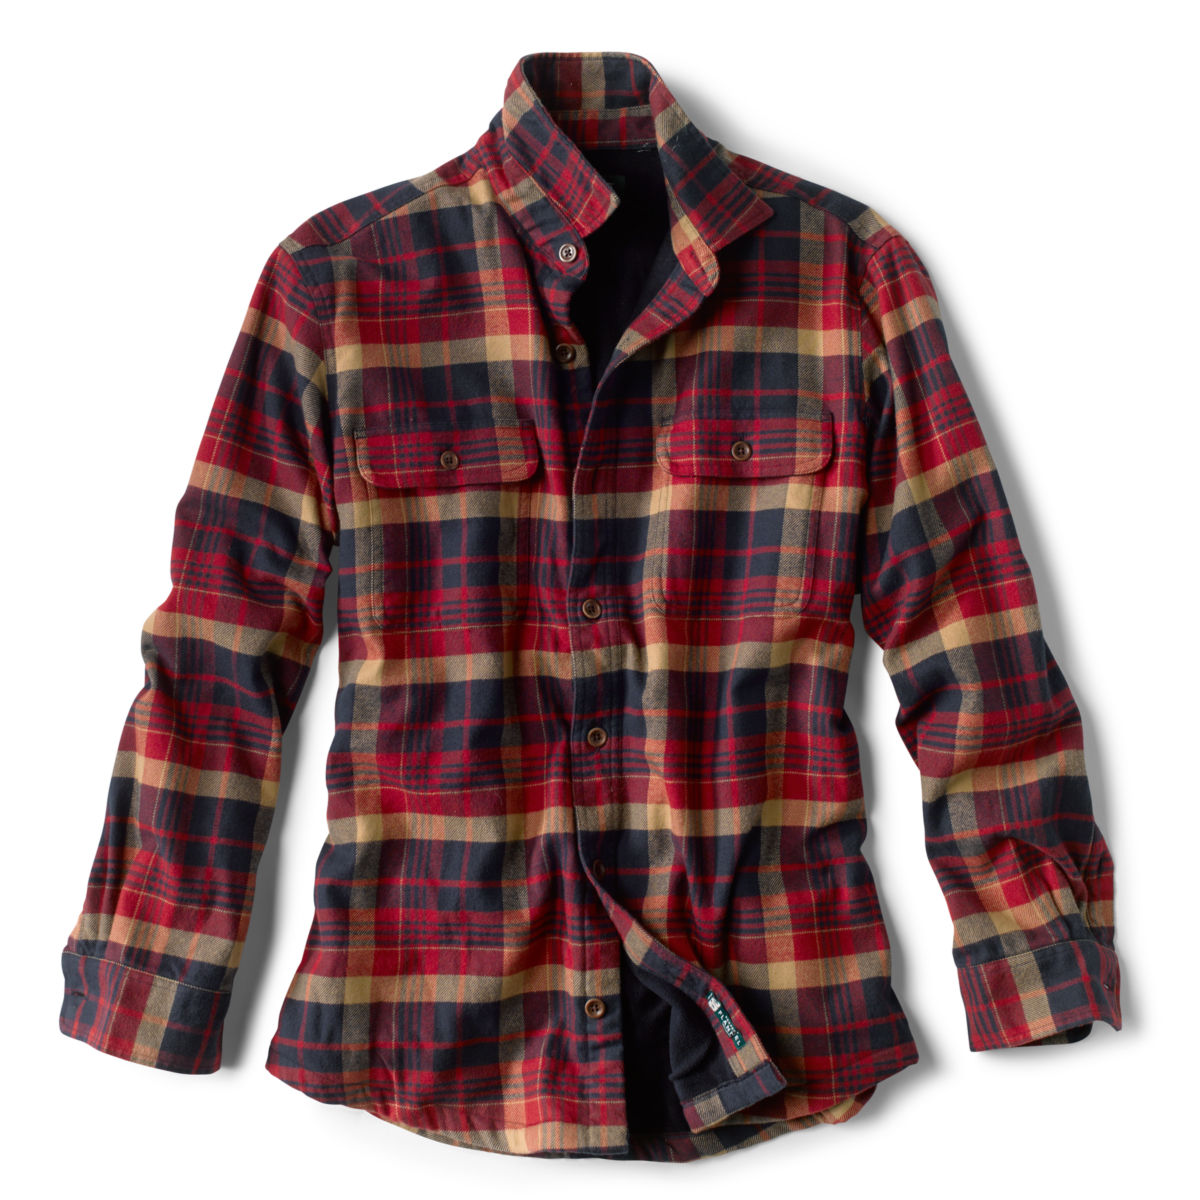 Fleece-Lined Perfect Flannel Long-Sleeved Shirt - NAVY/REDimage number 0